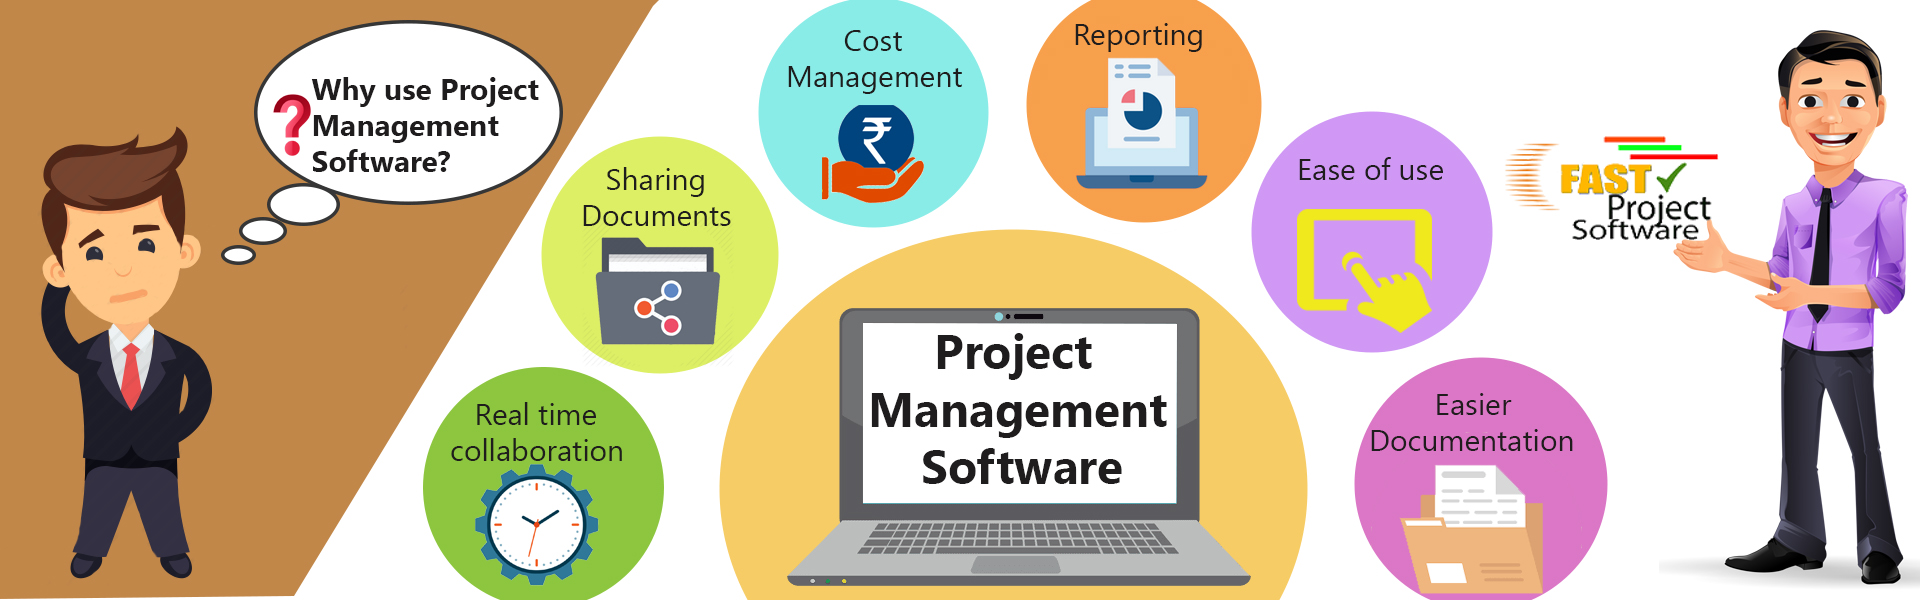 Why use project management software